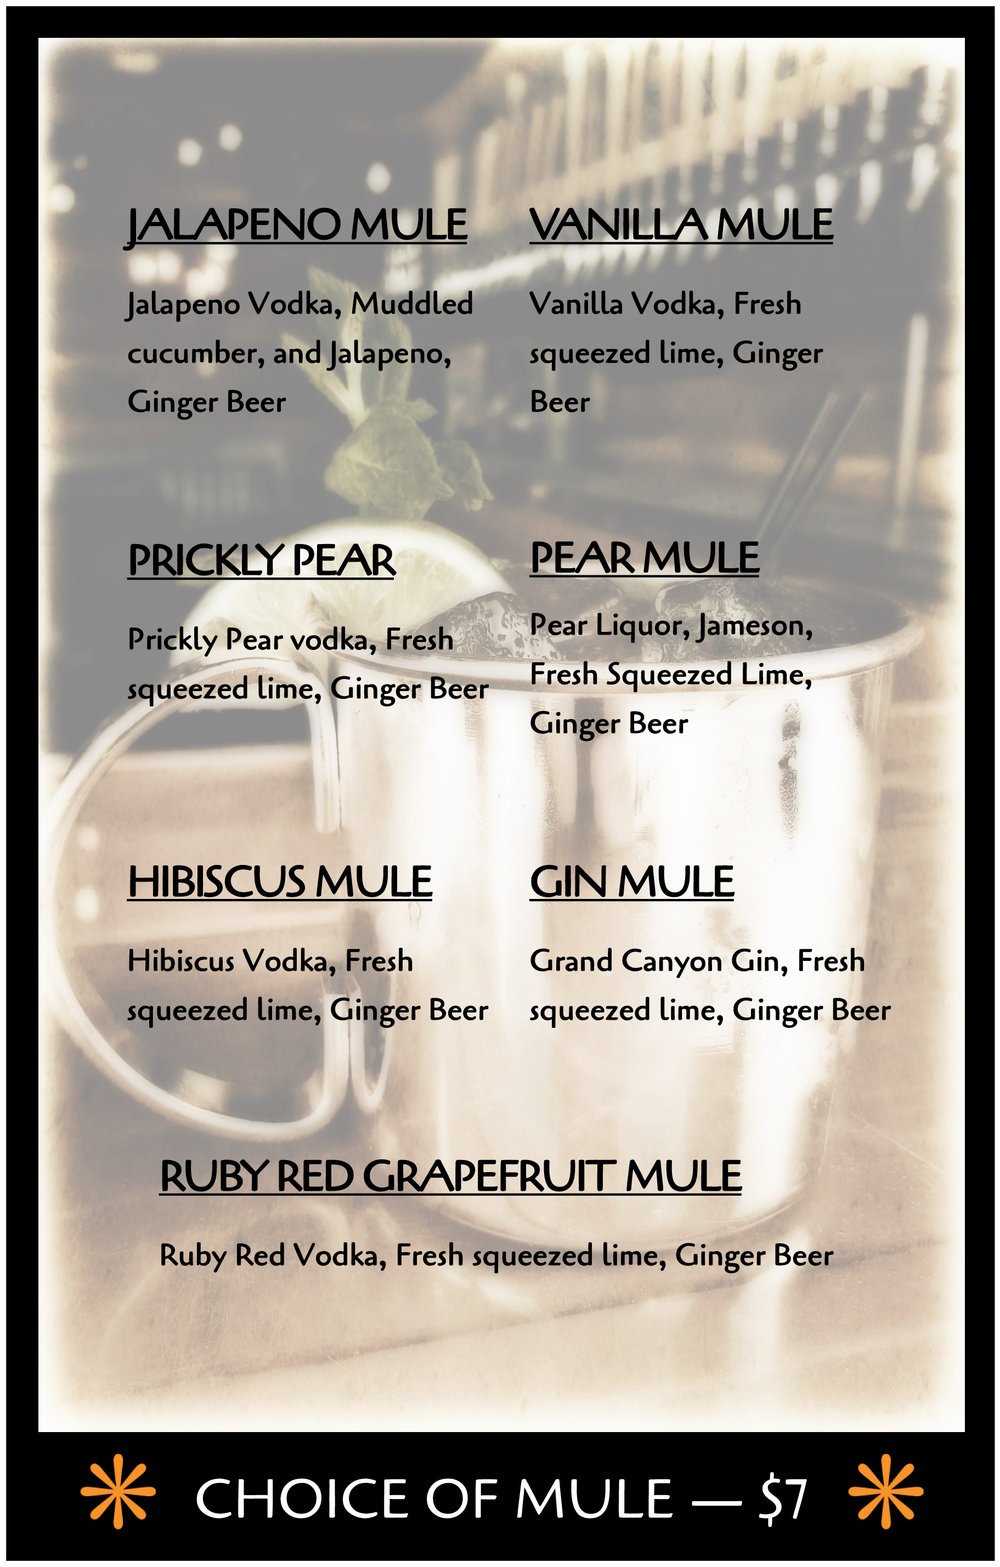 drink-menu-mules_2019.01.jpg